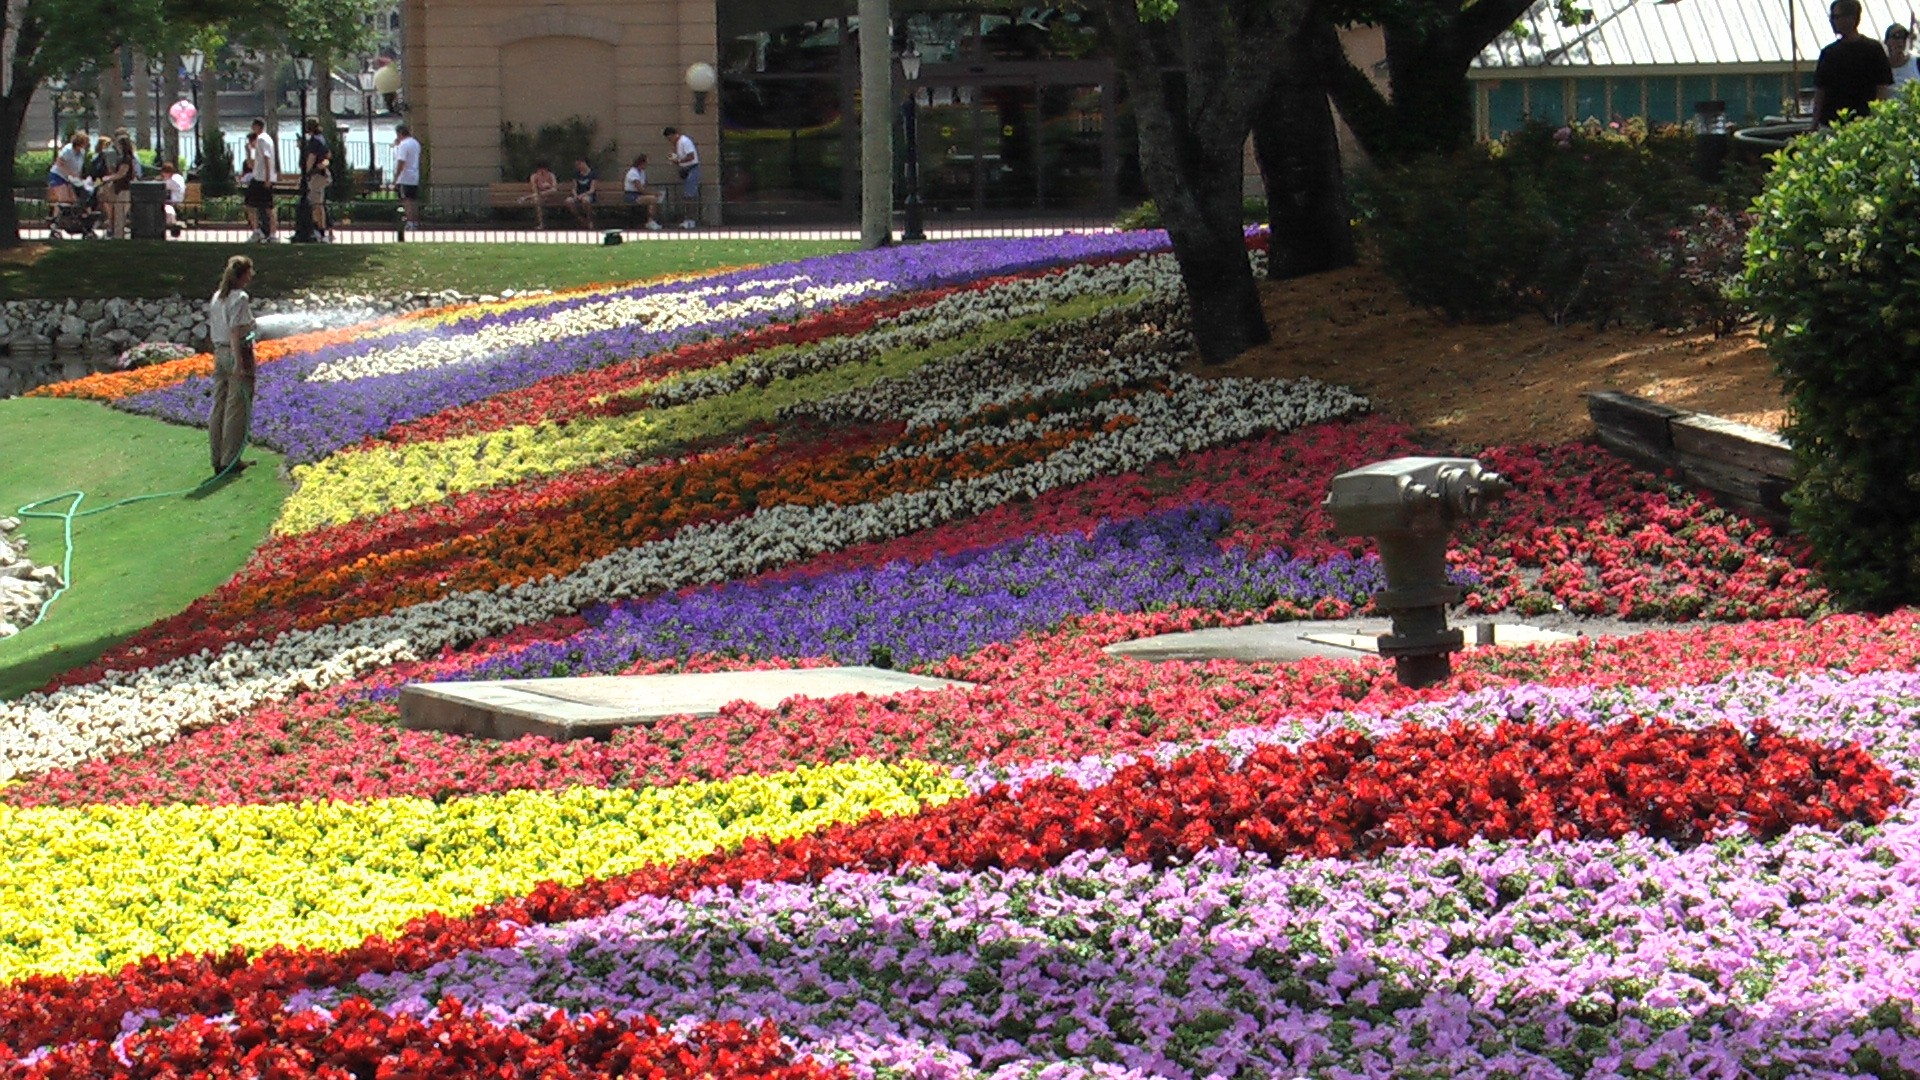 Flowers-Gardens-Epcot-Landscapes-Beautiful-HD-Wallpapers